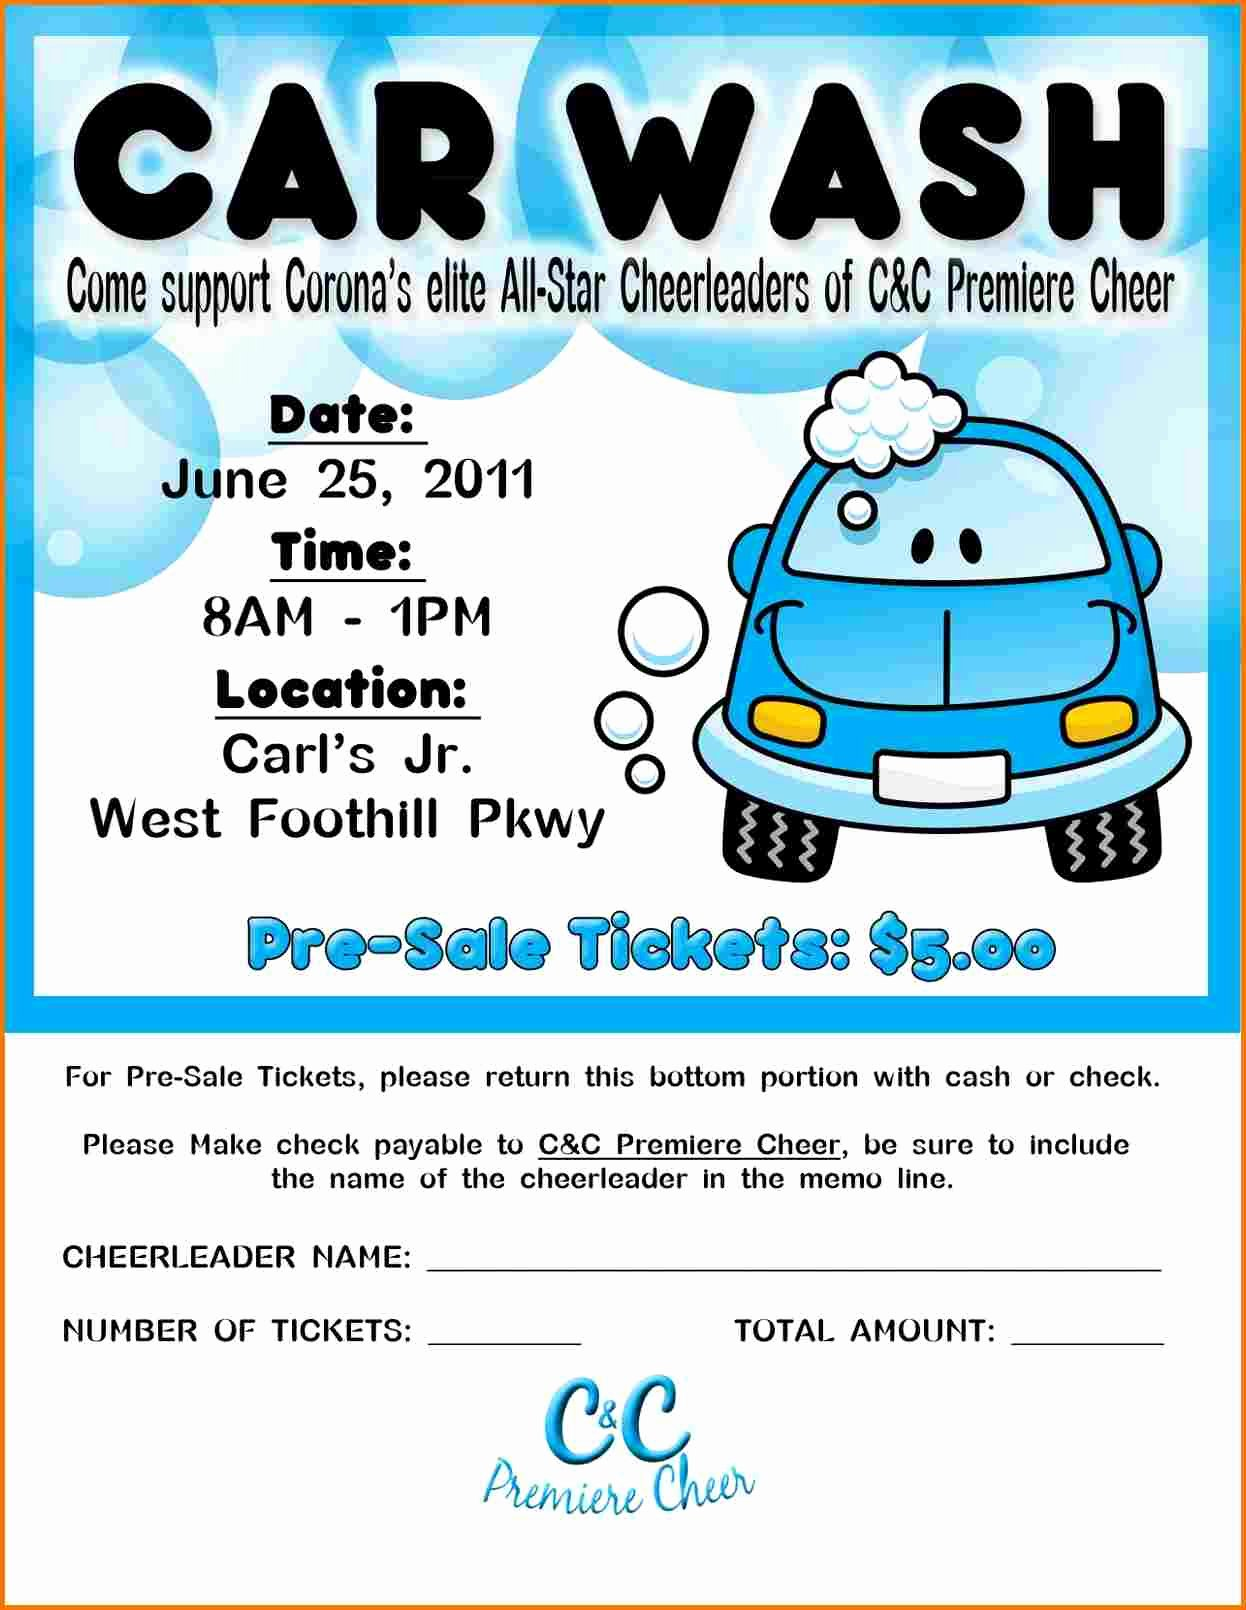 Car Wash Flyers Template Beautiful Car Wash Flyer Template